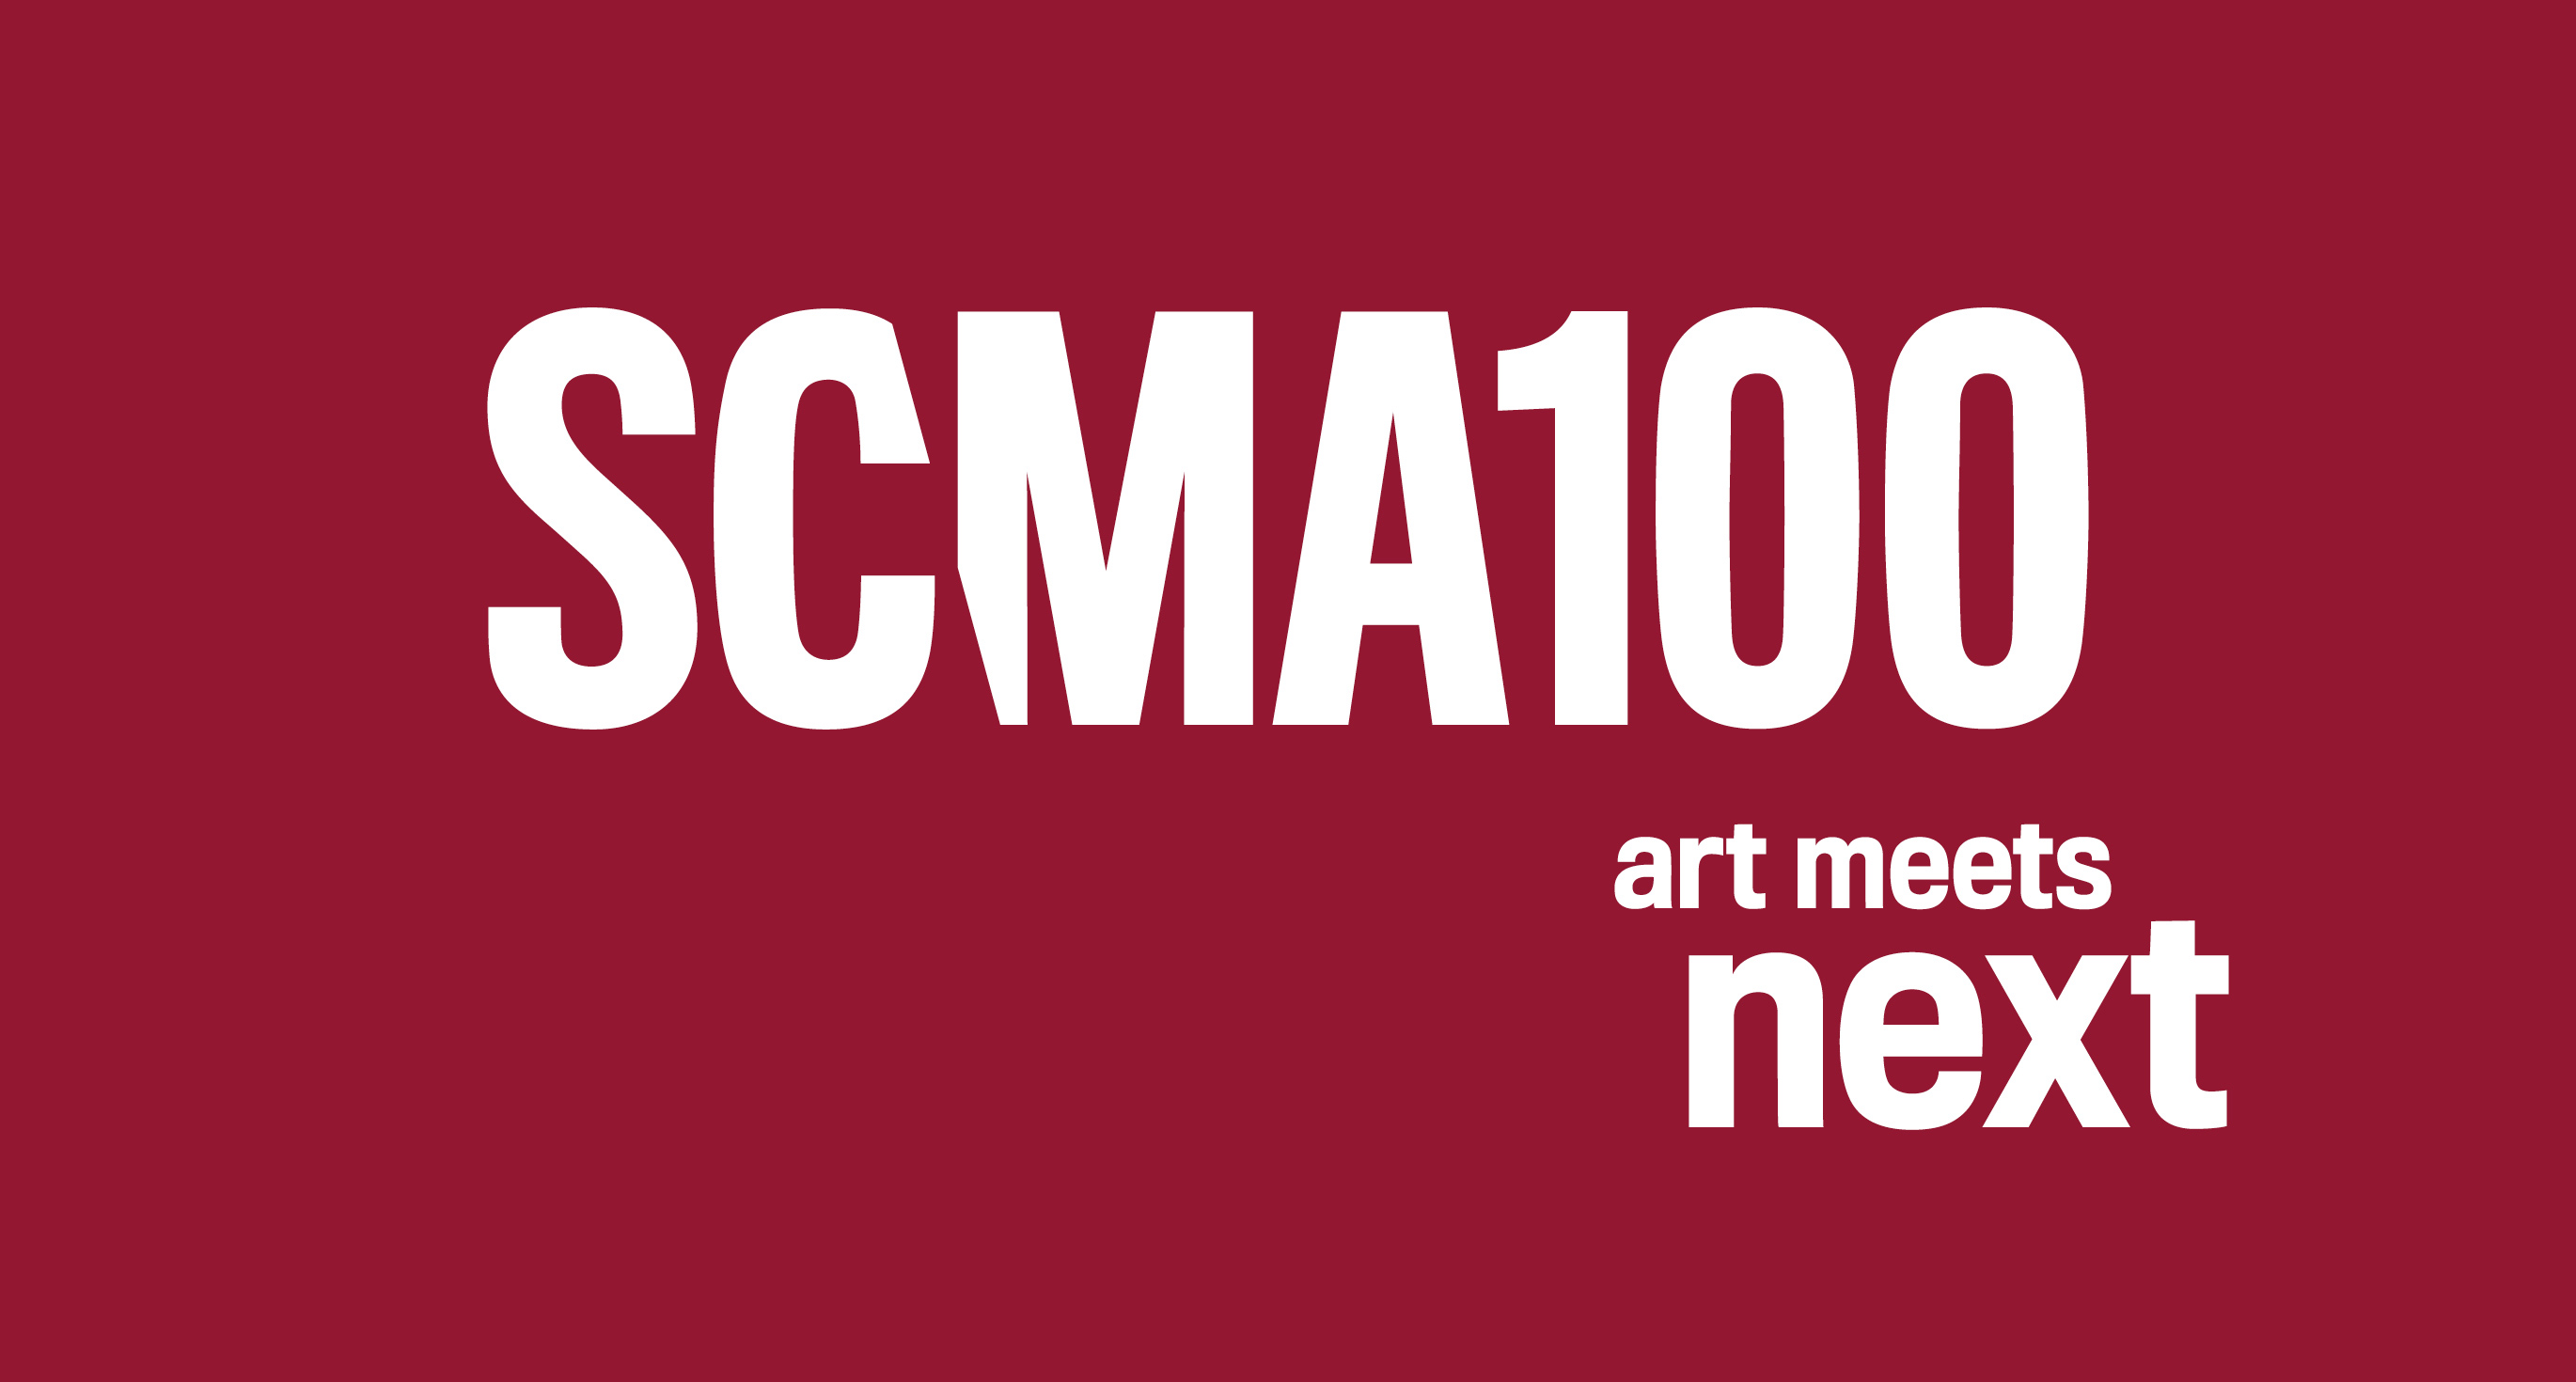 SCMA100 art meets next logo